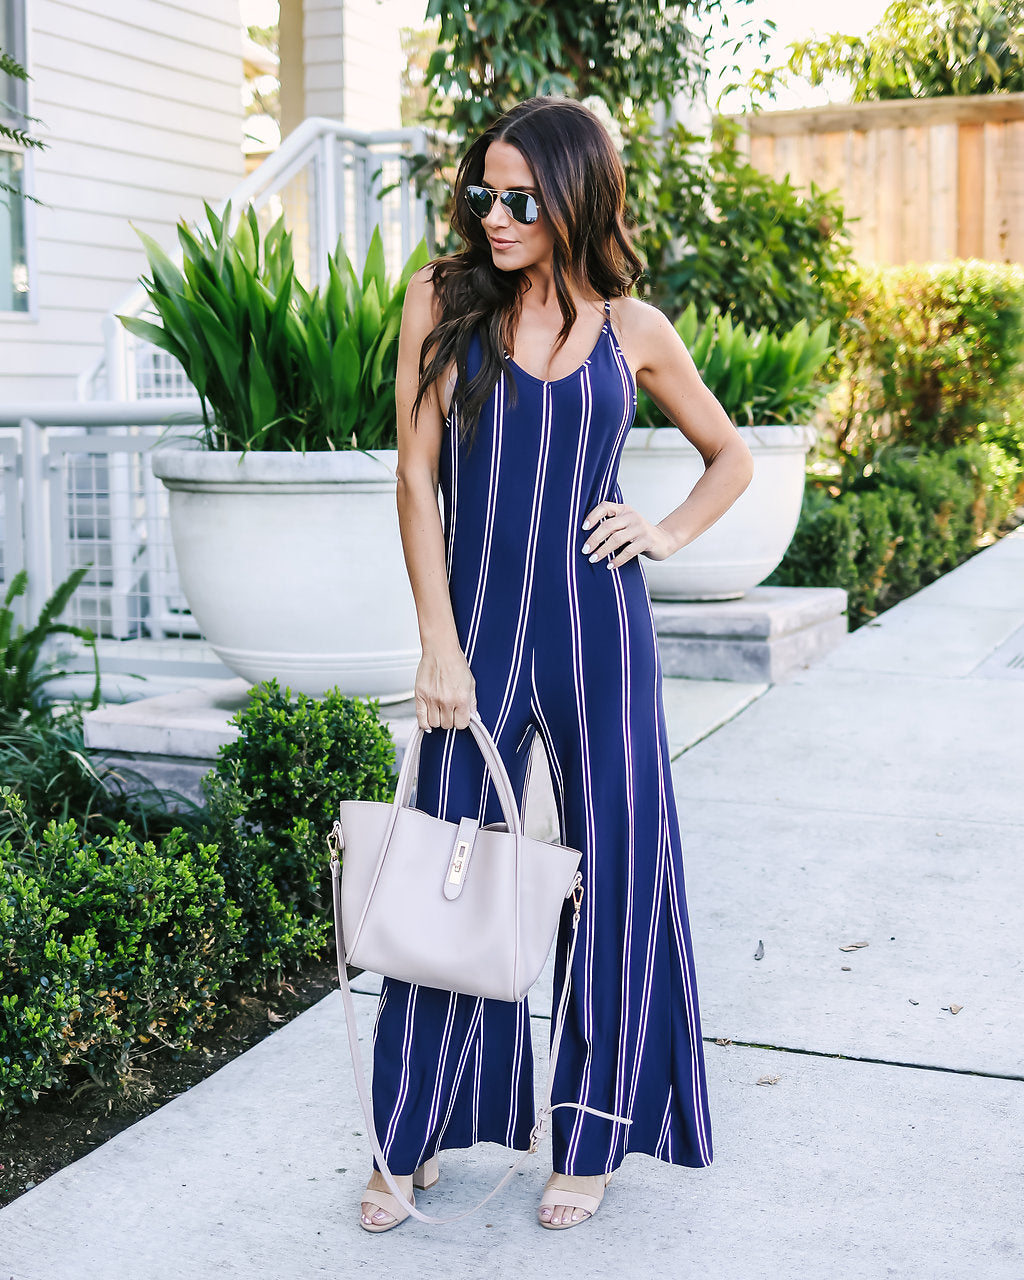 73d1b7eda92 https://www.vicicollection.com/ daily https://www.vicicollection.com ...